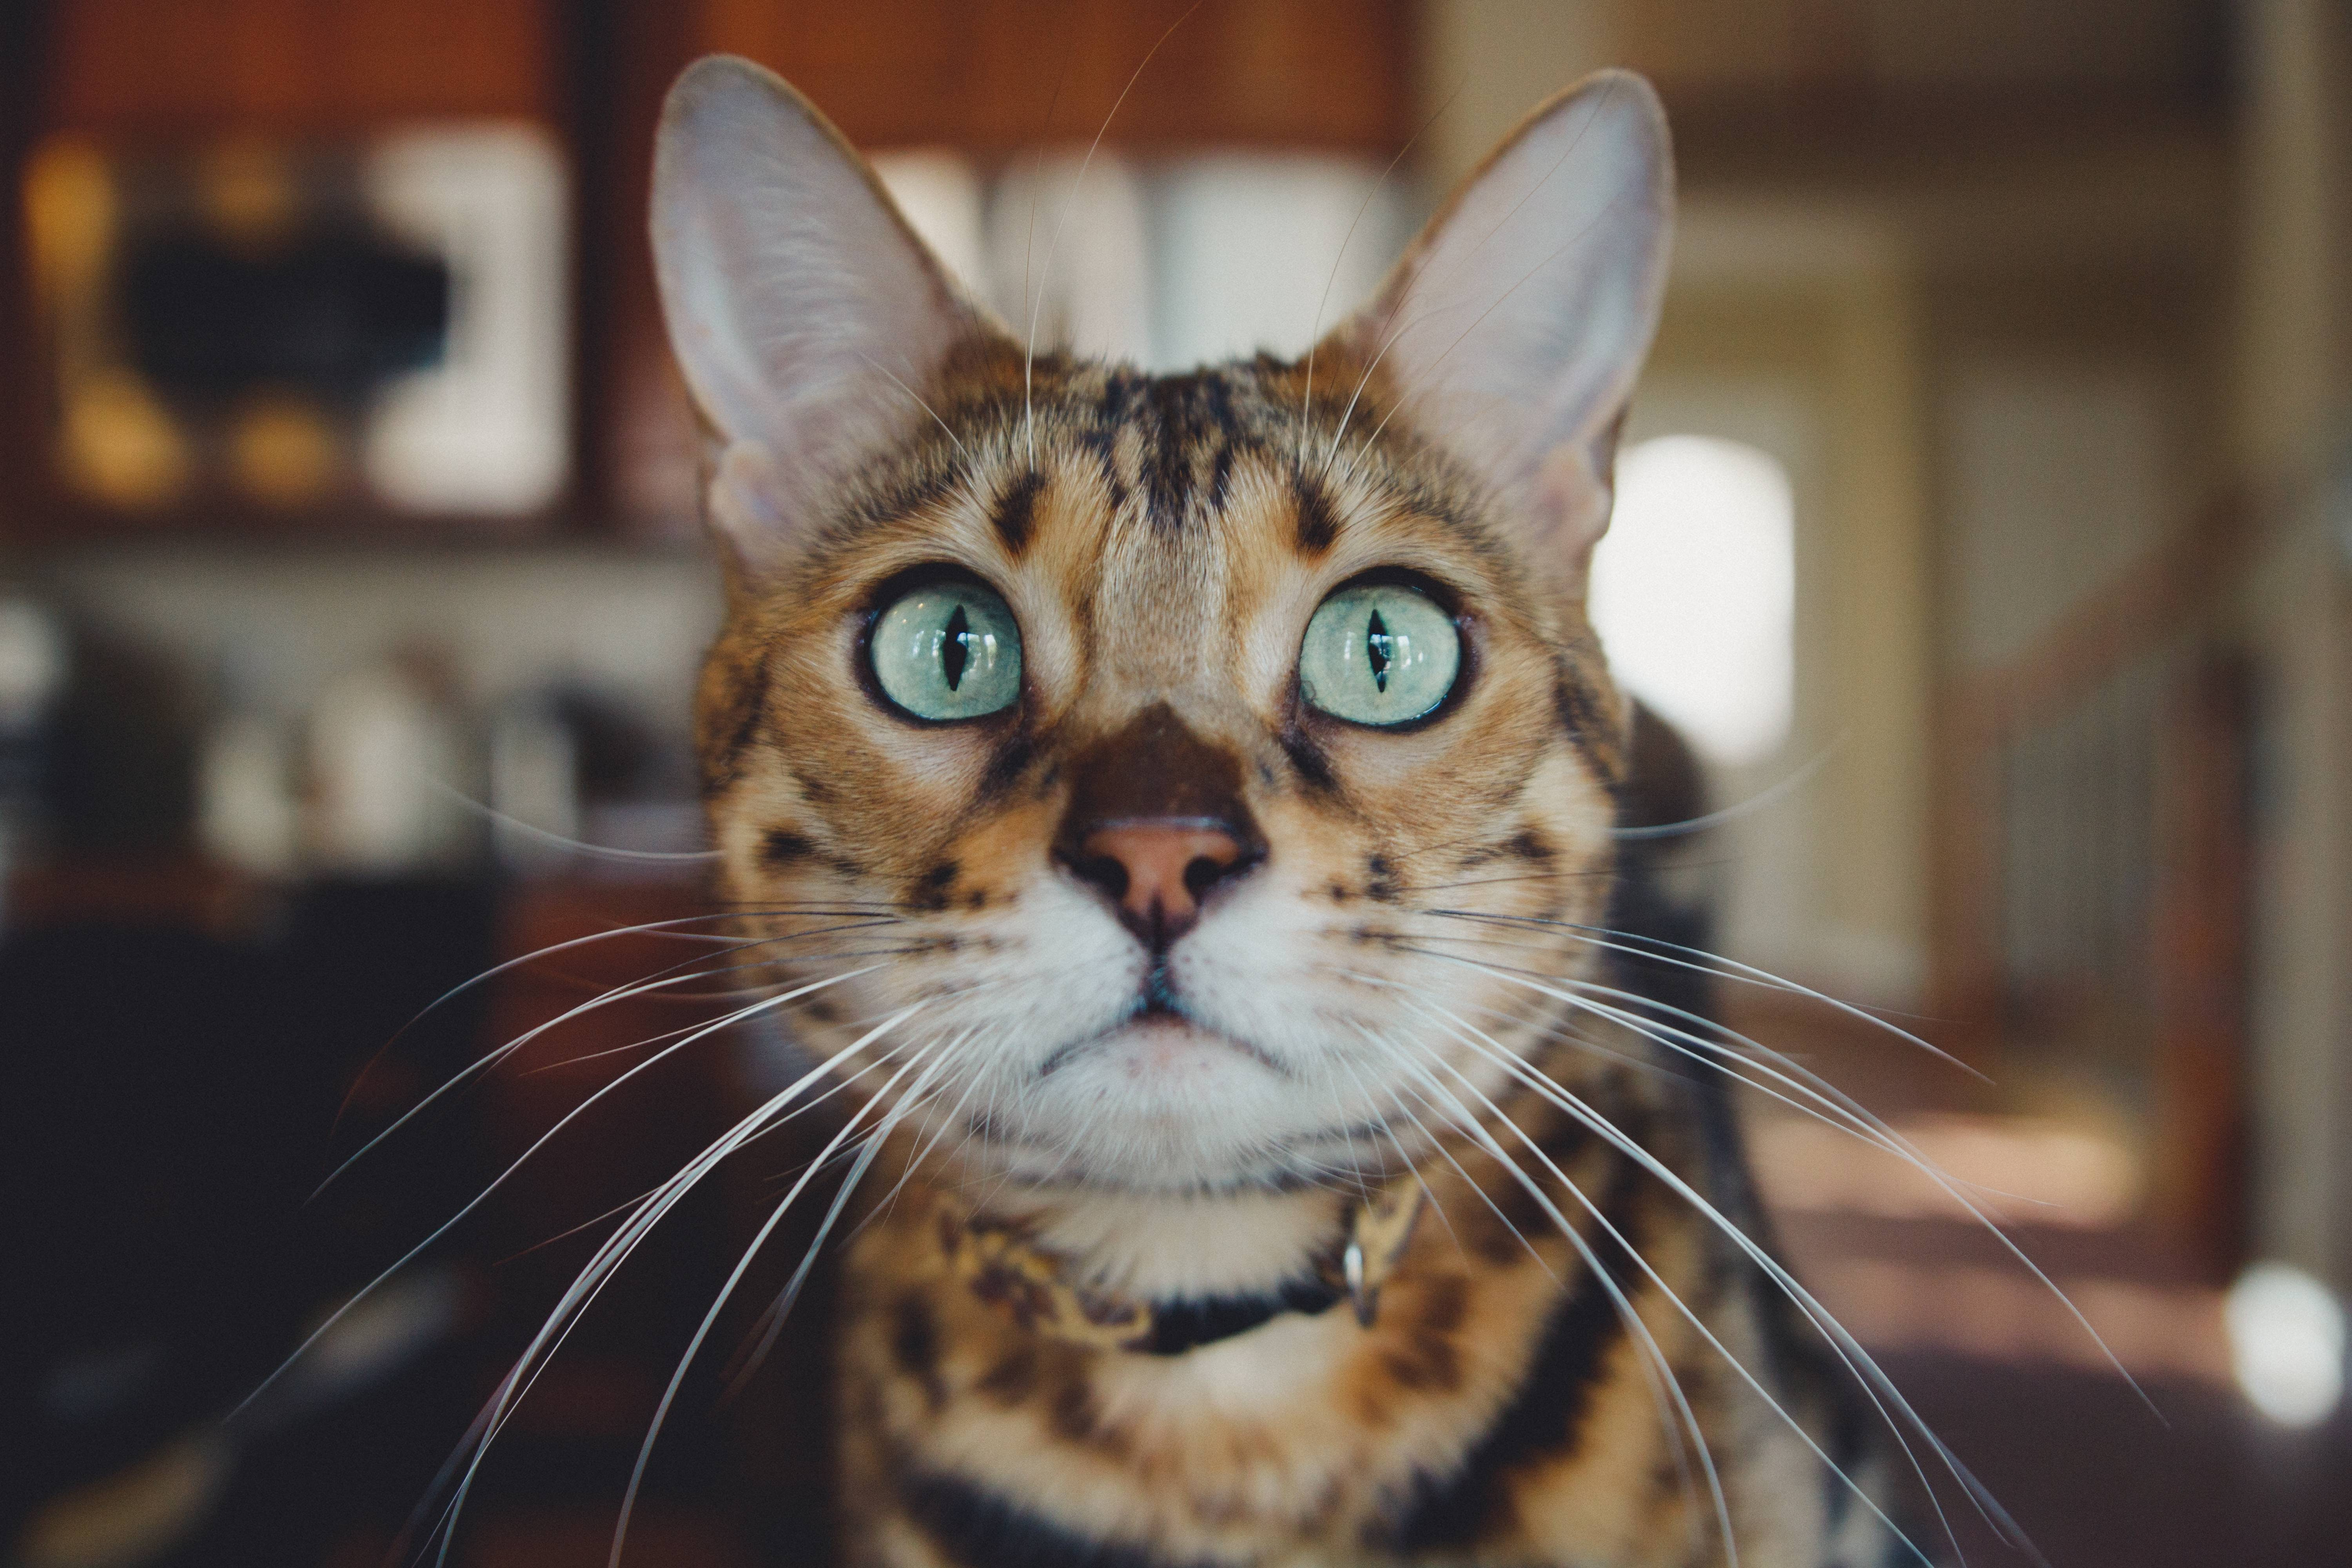 Close-up of a tiger-striped cat's face